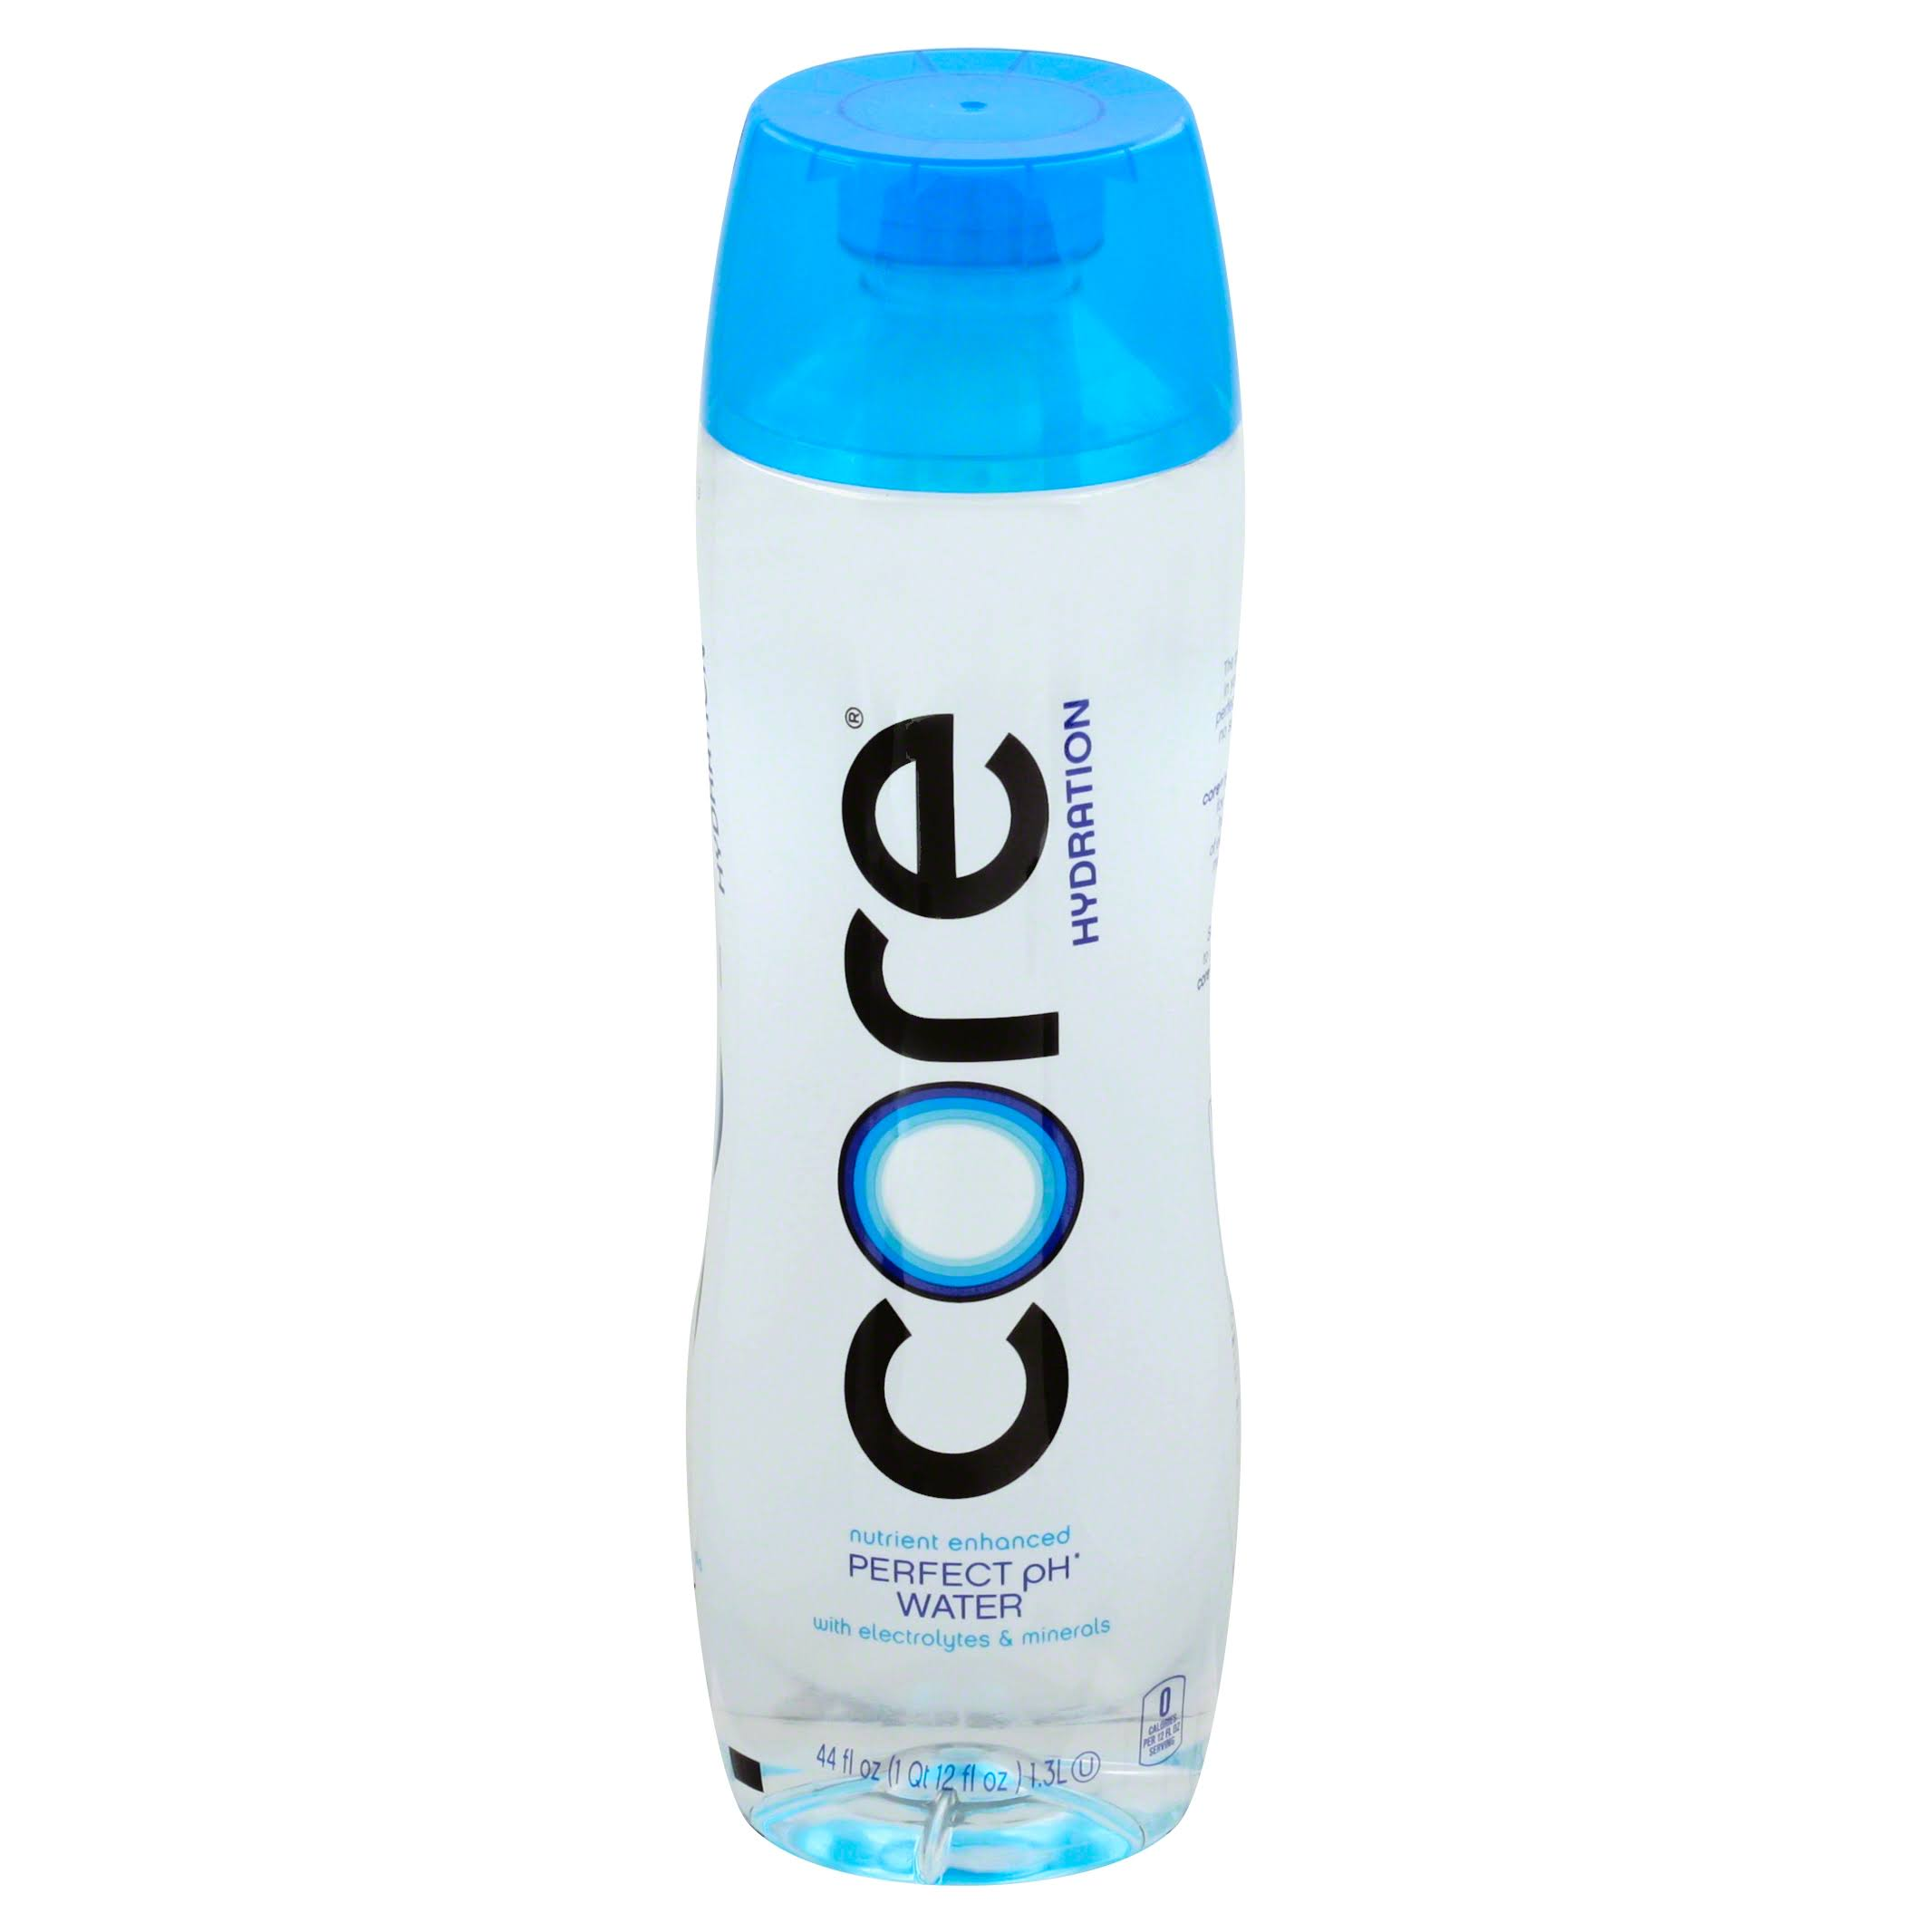 Core Water, Perfect pH - 44 fl oz